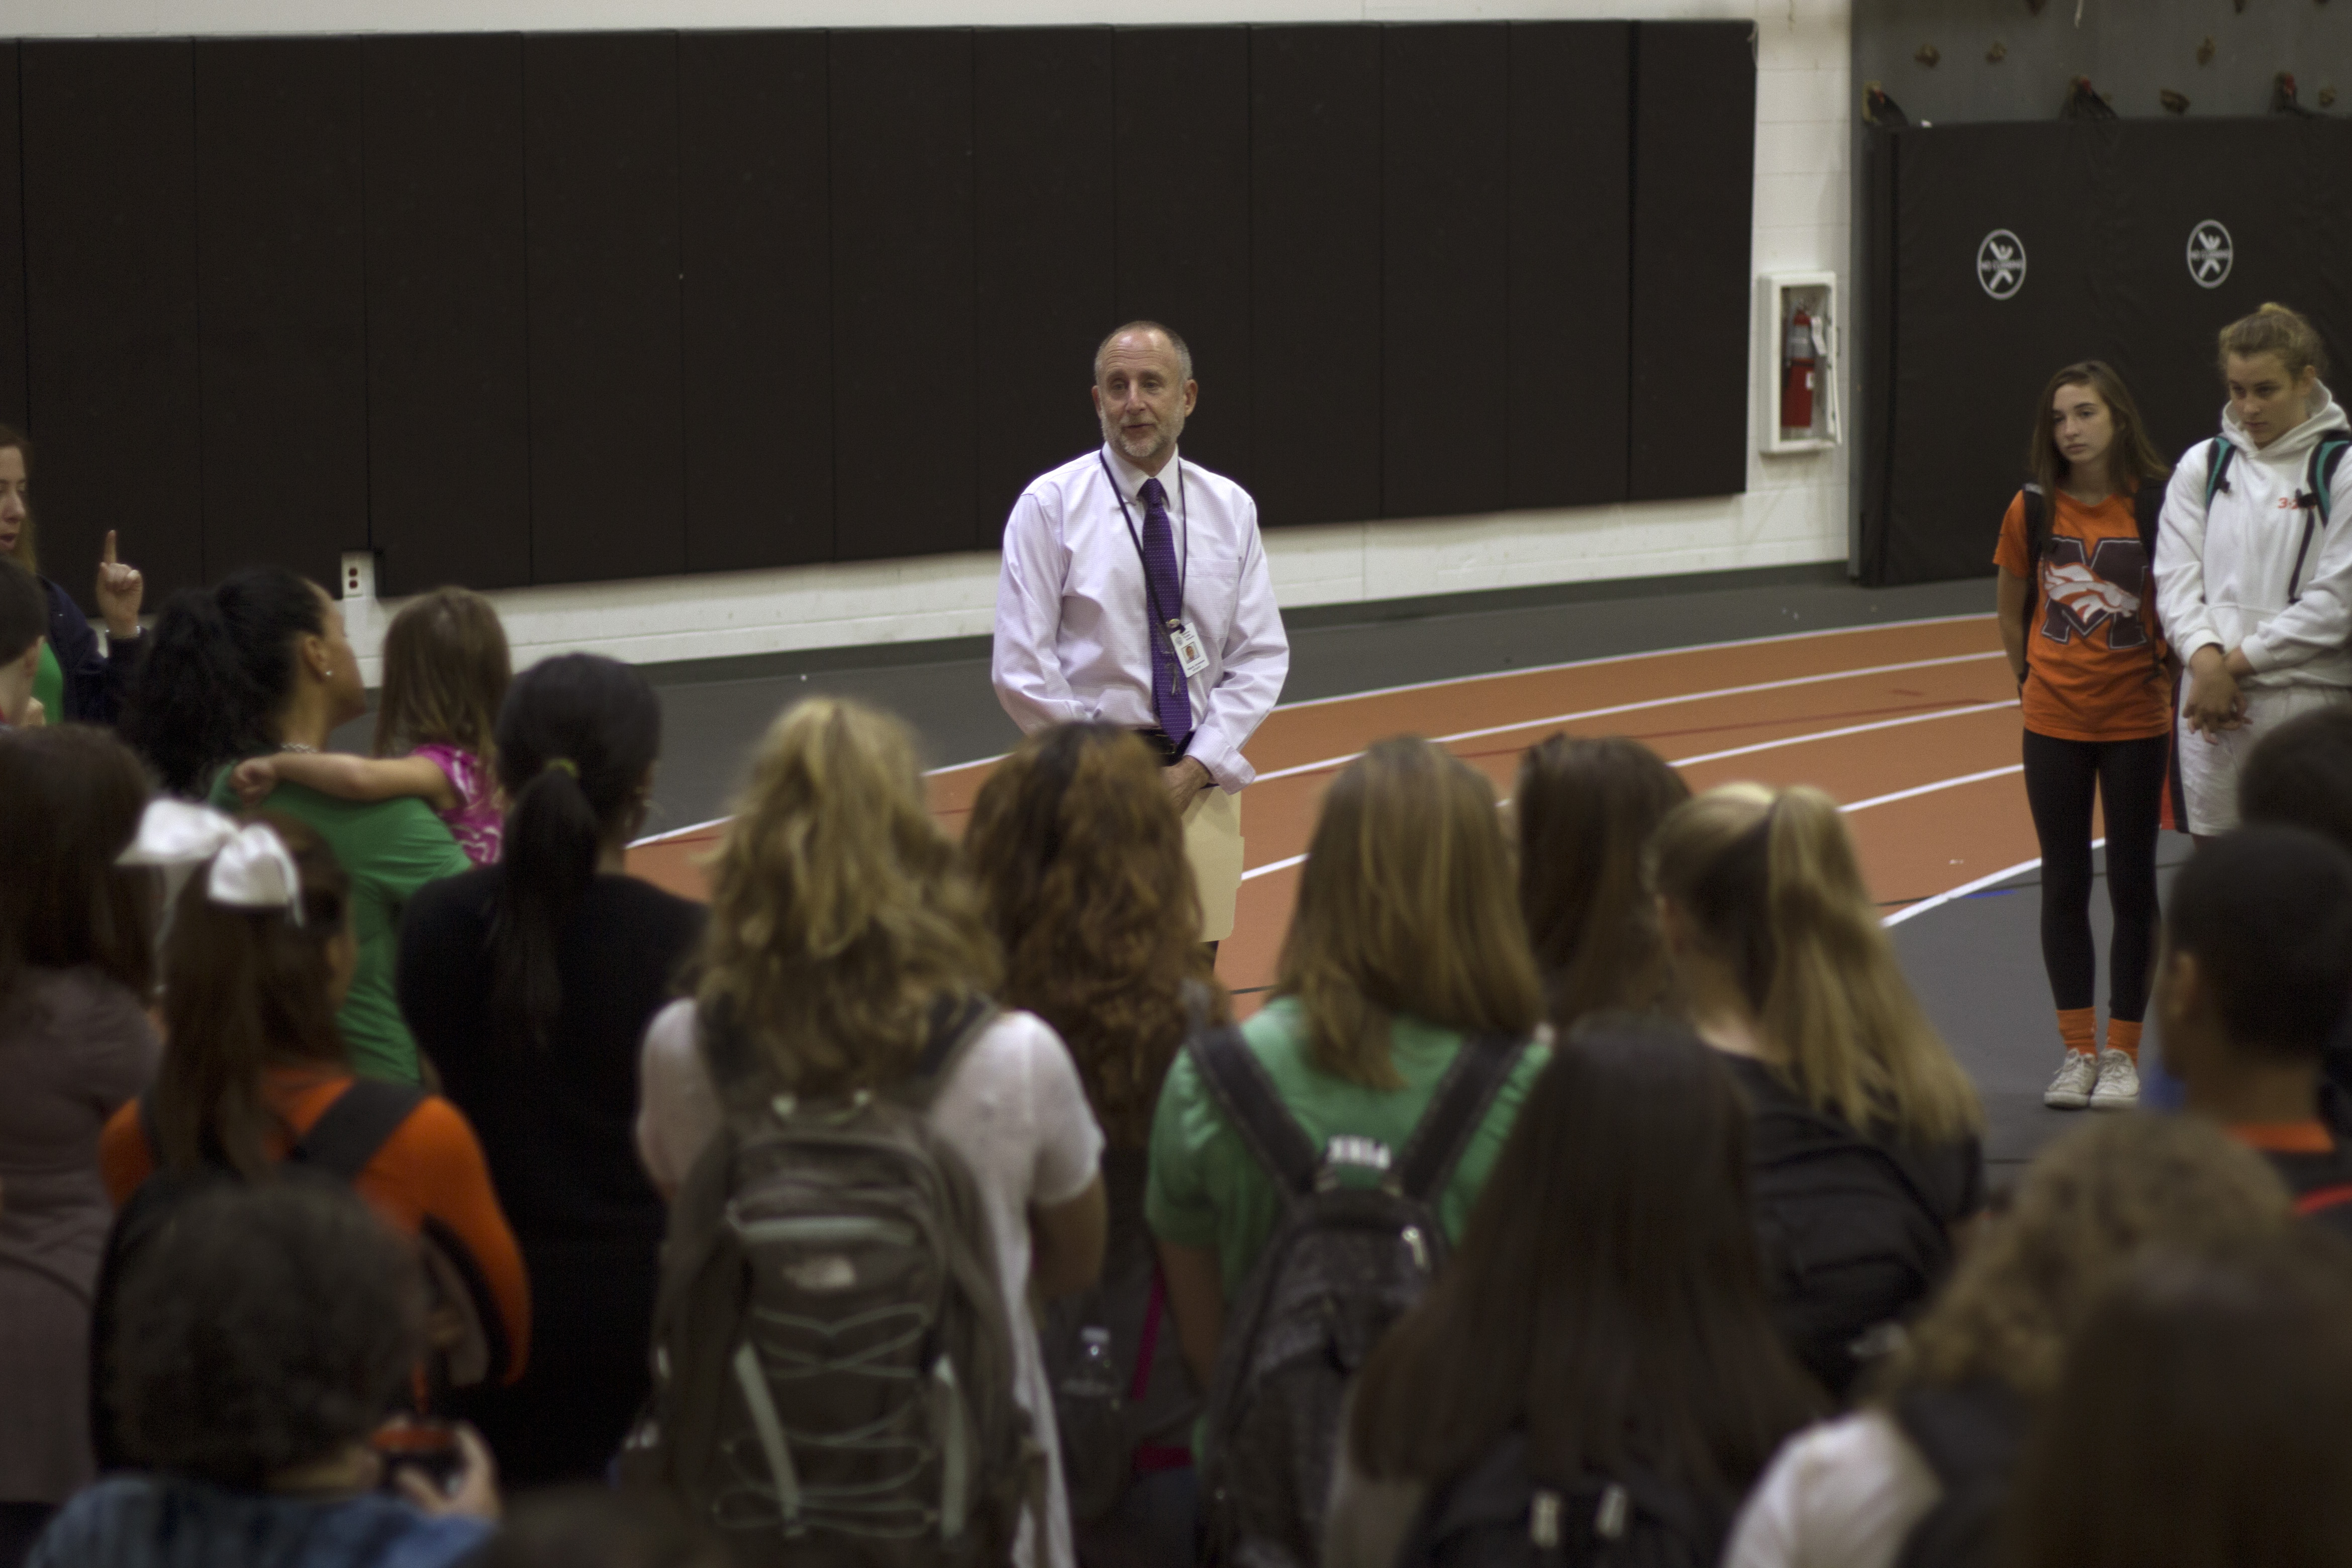 Interim principal Mark Aronson speaks to students in the SOA before the moment of silence. Photo by Josh Shub-Seltzer.